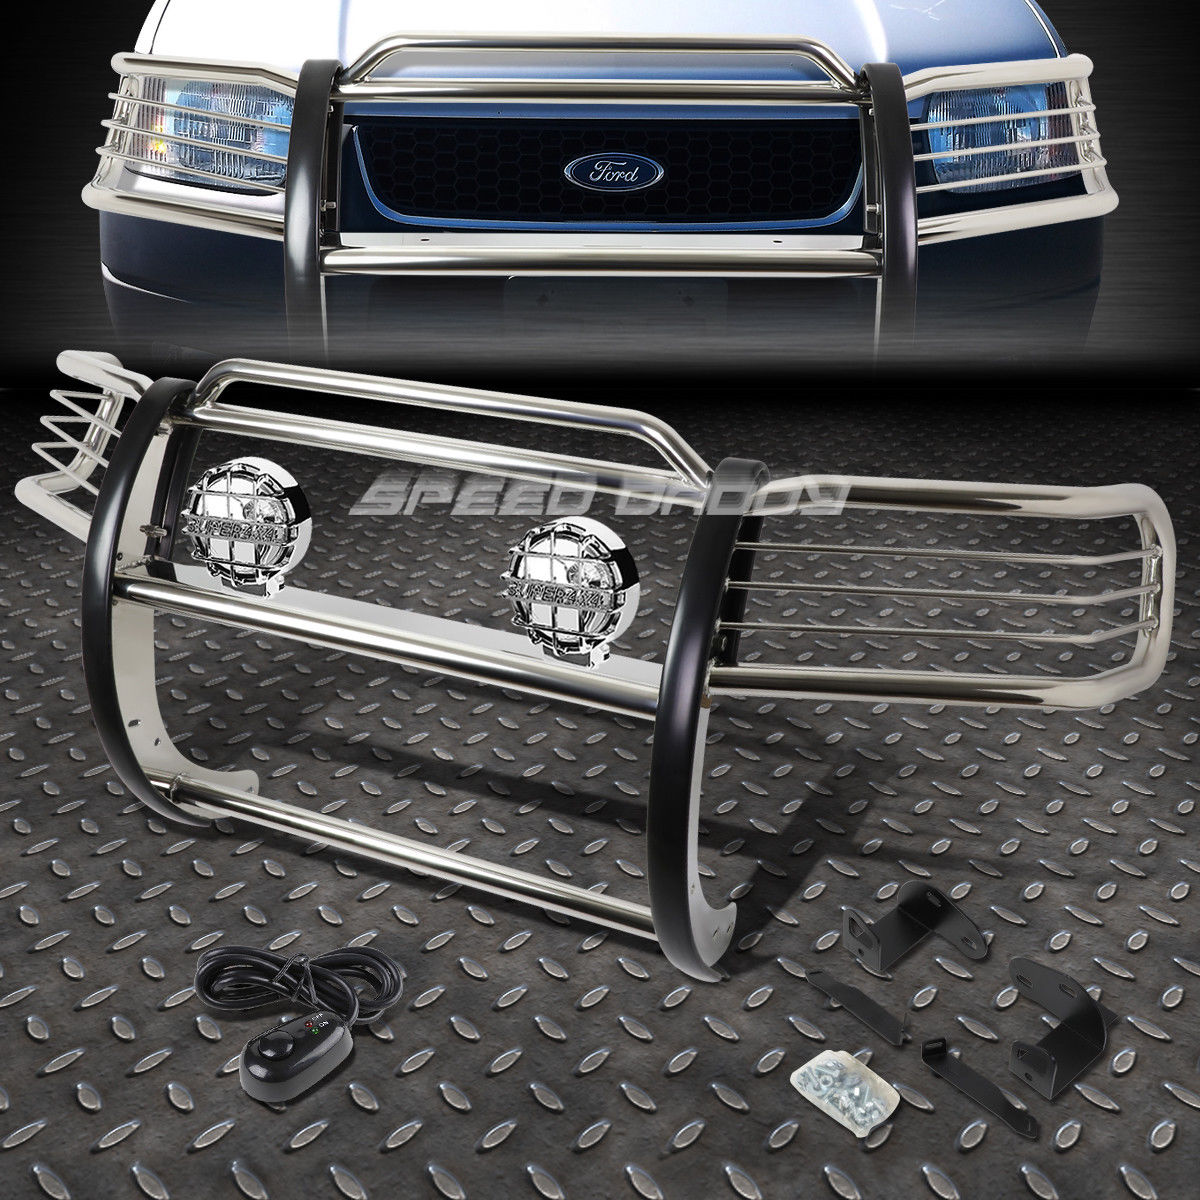 USフォグライト CHROME BRUSH GRILL GUARD+ROUND CLEAR FOG LIGHT FOR 01-04 FORD ESCAPE CD2 SUV CHROME BRUSH GRILL GUARD + 01-04フォードエスケープCD2 SUVのためのクリアクリアフォグライト